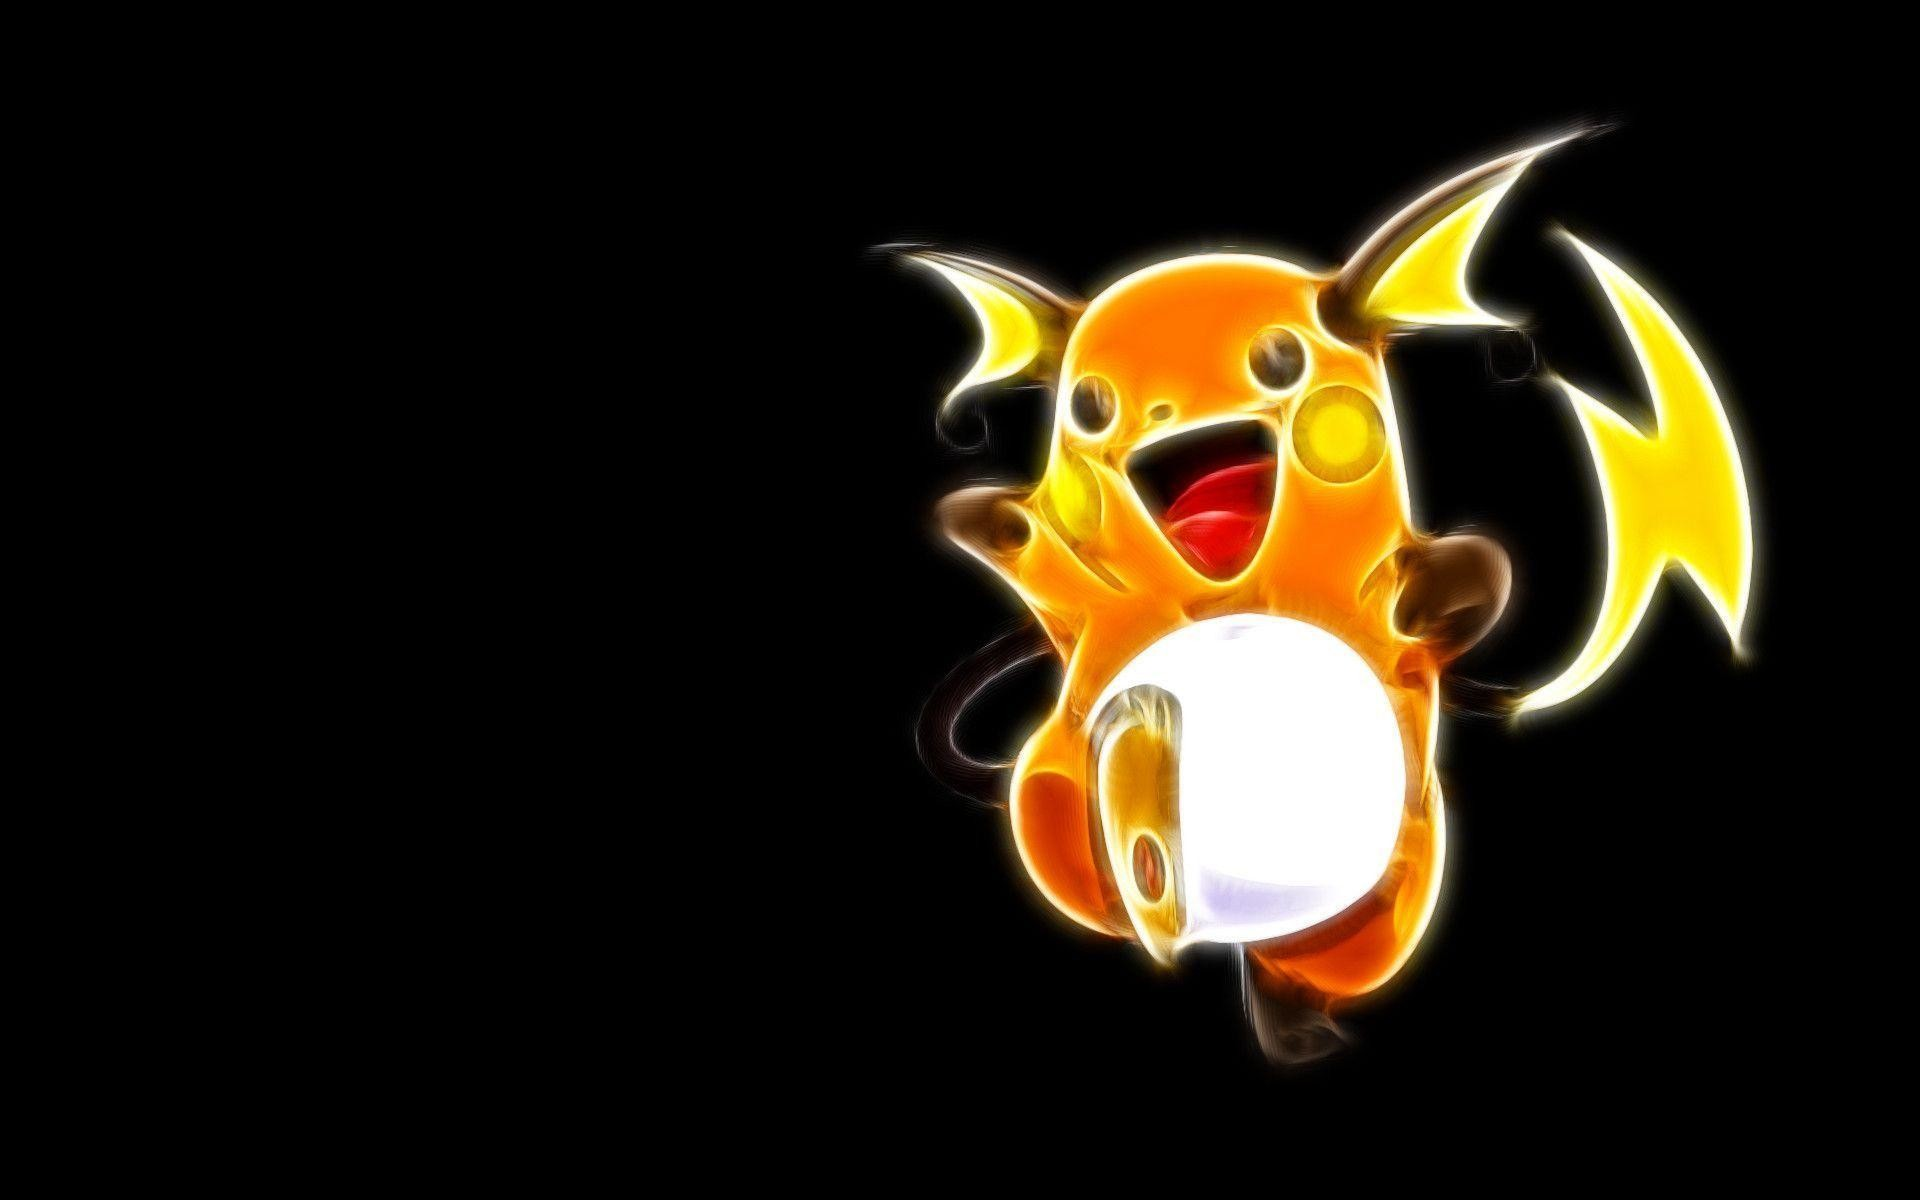 Pokemon Hd Wallpapers and Background